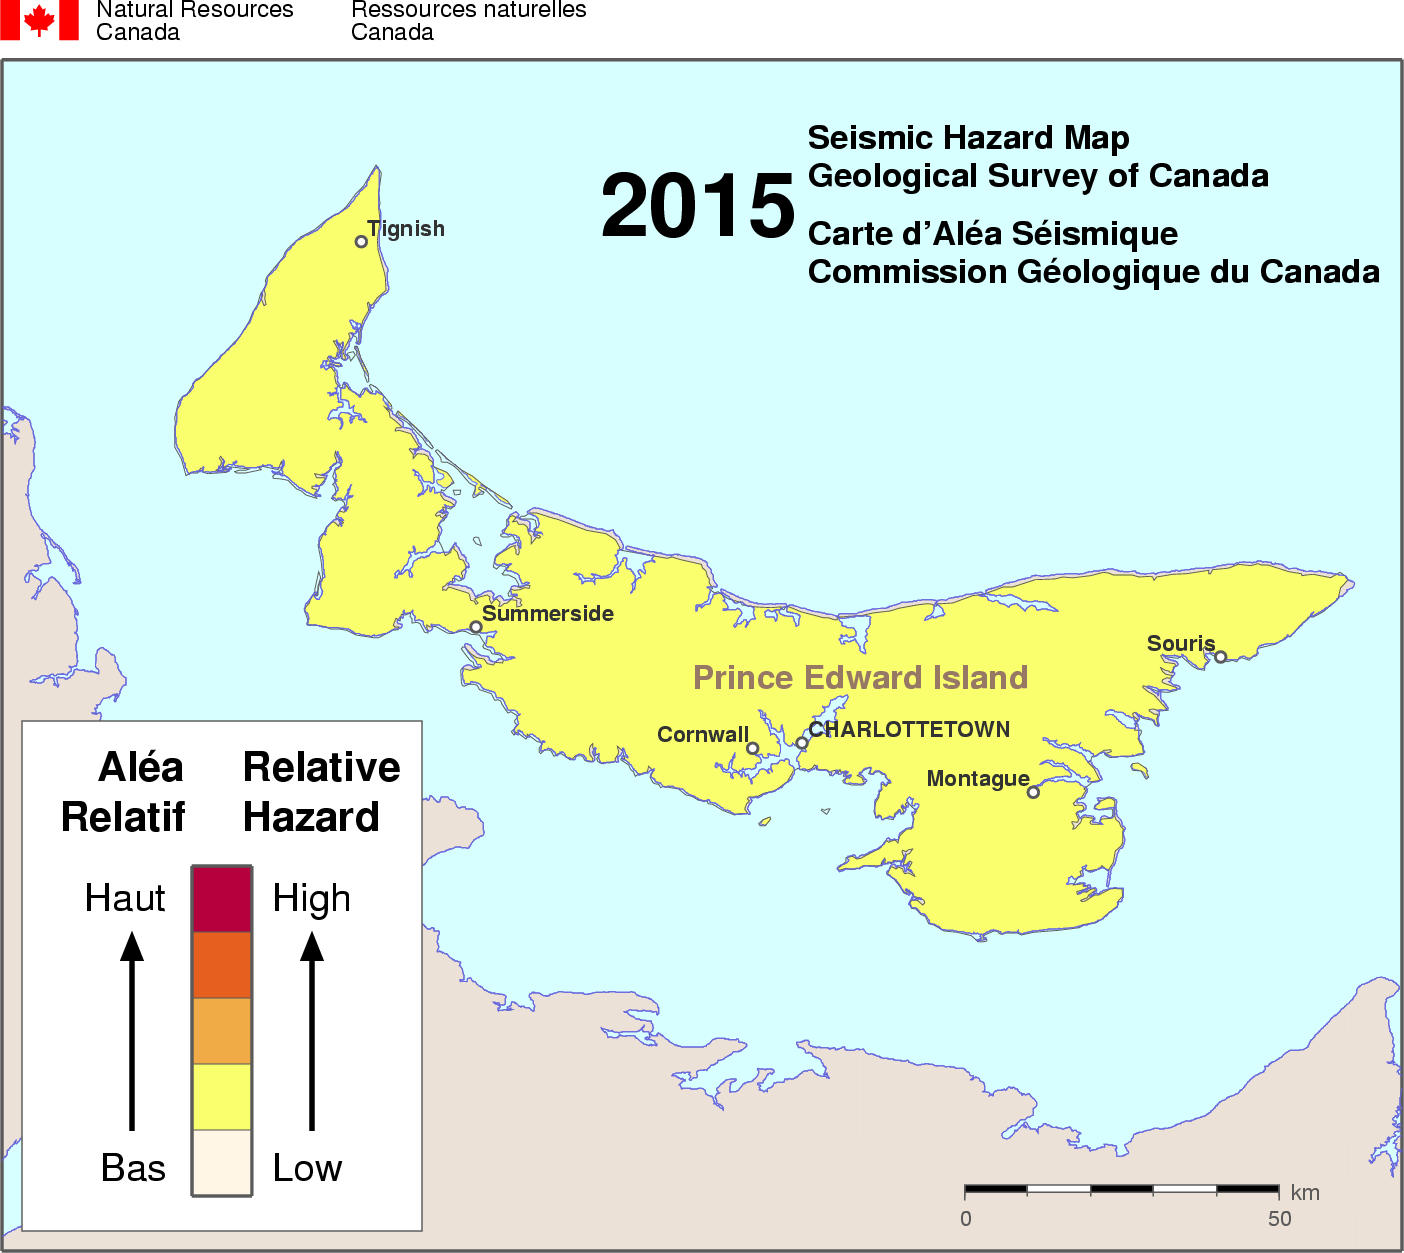 Cornwall Canada Map.Simplified Seismic Hazard Map For Canada The Provinces And Territories